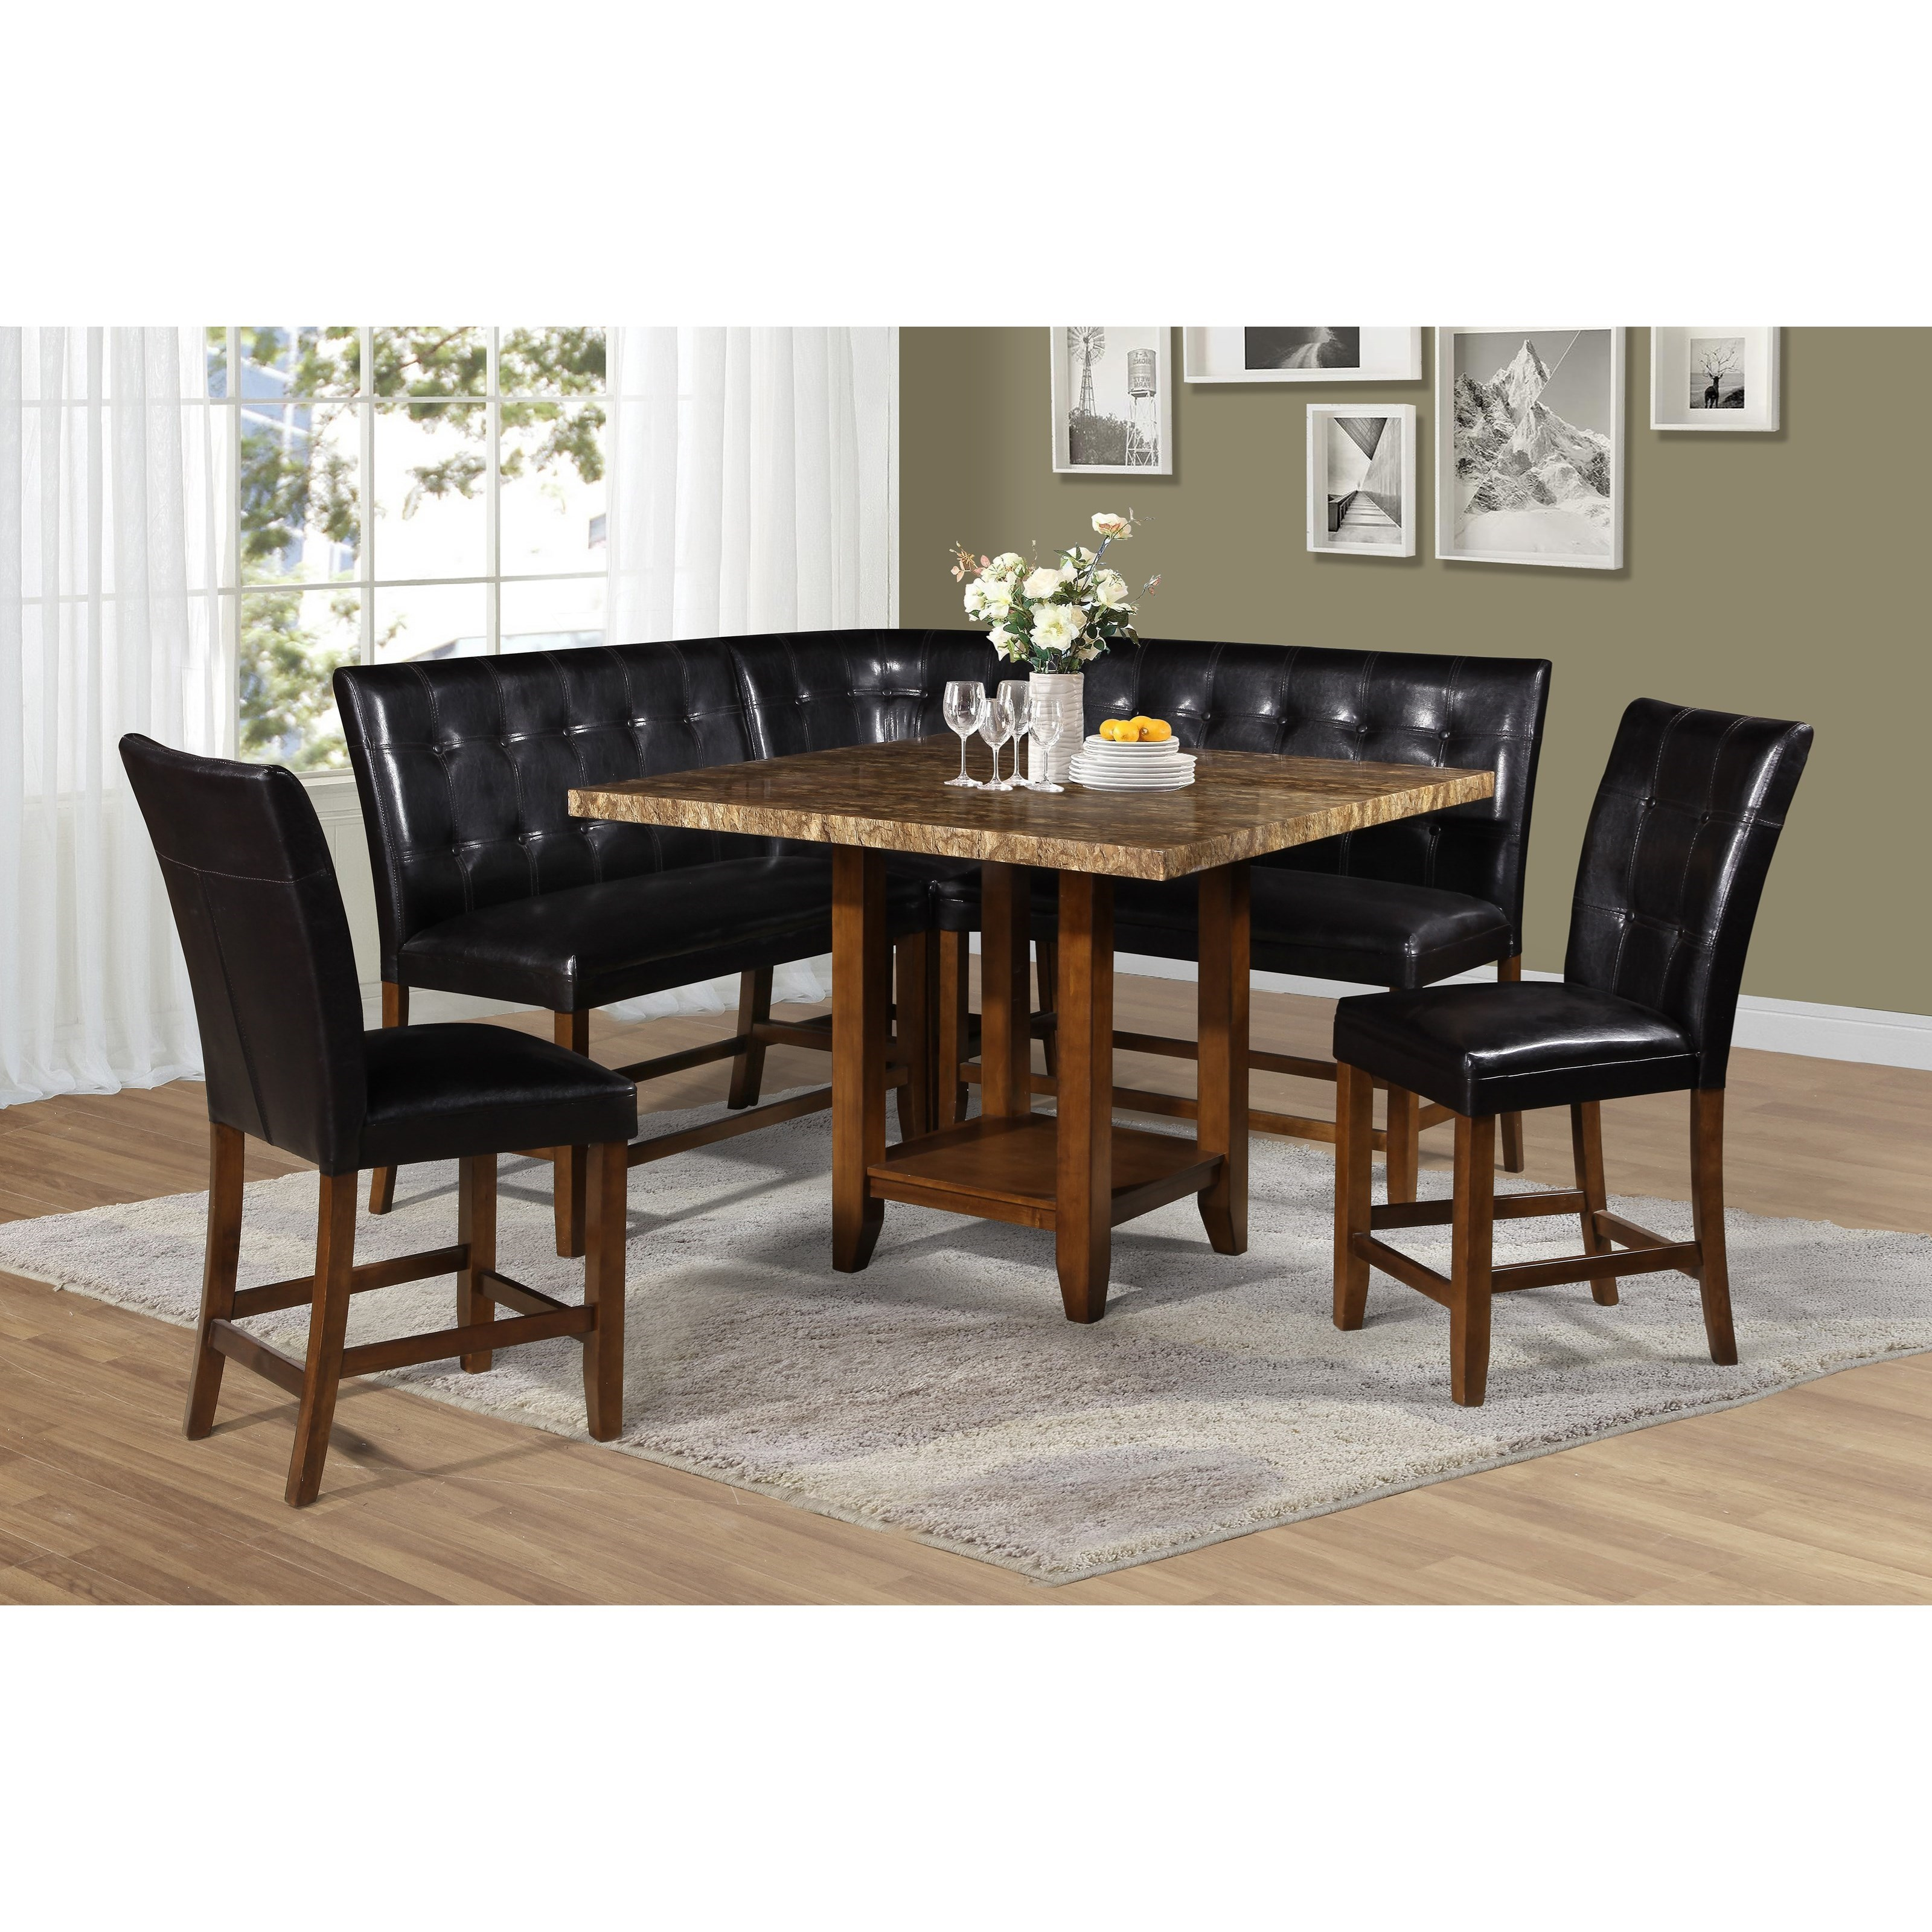 6 Piece Counter Table and Chair/Bench Set